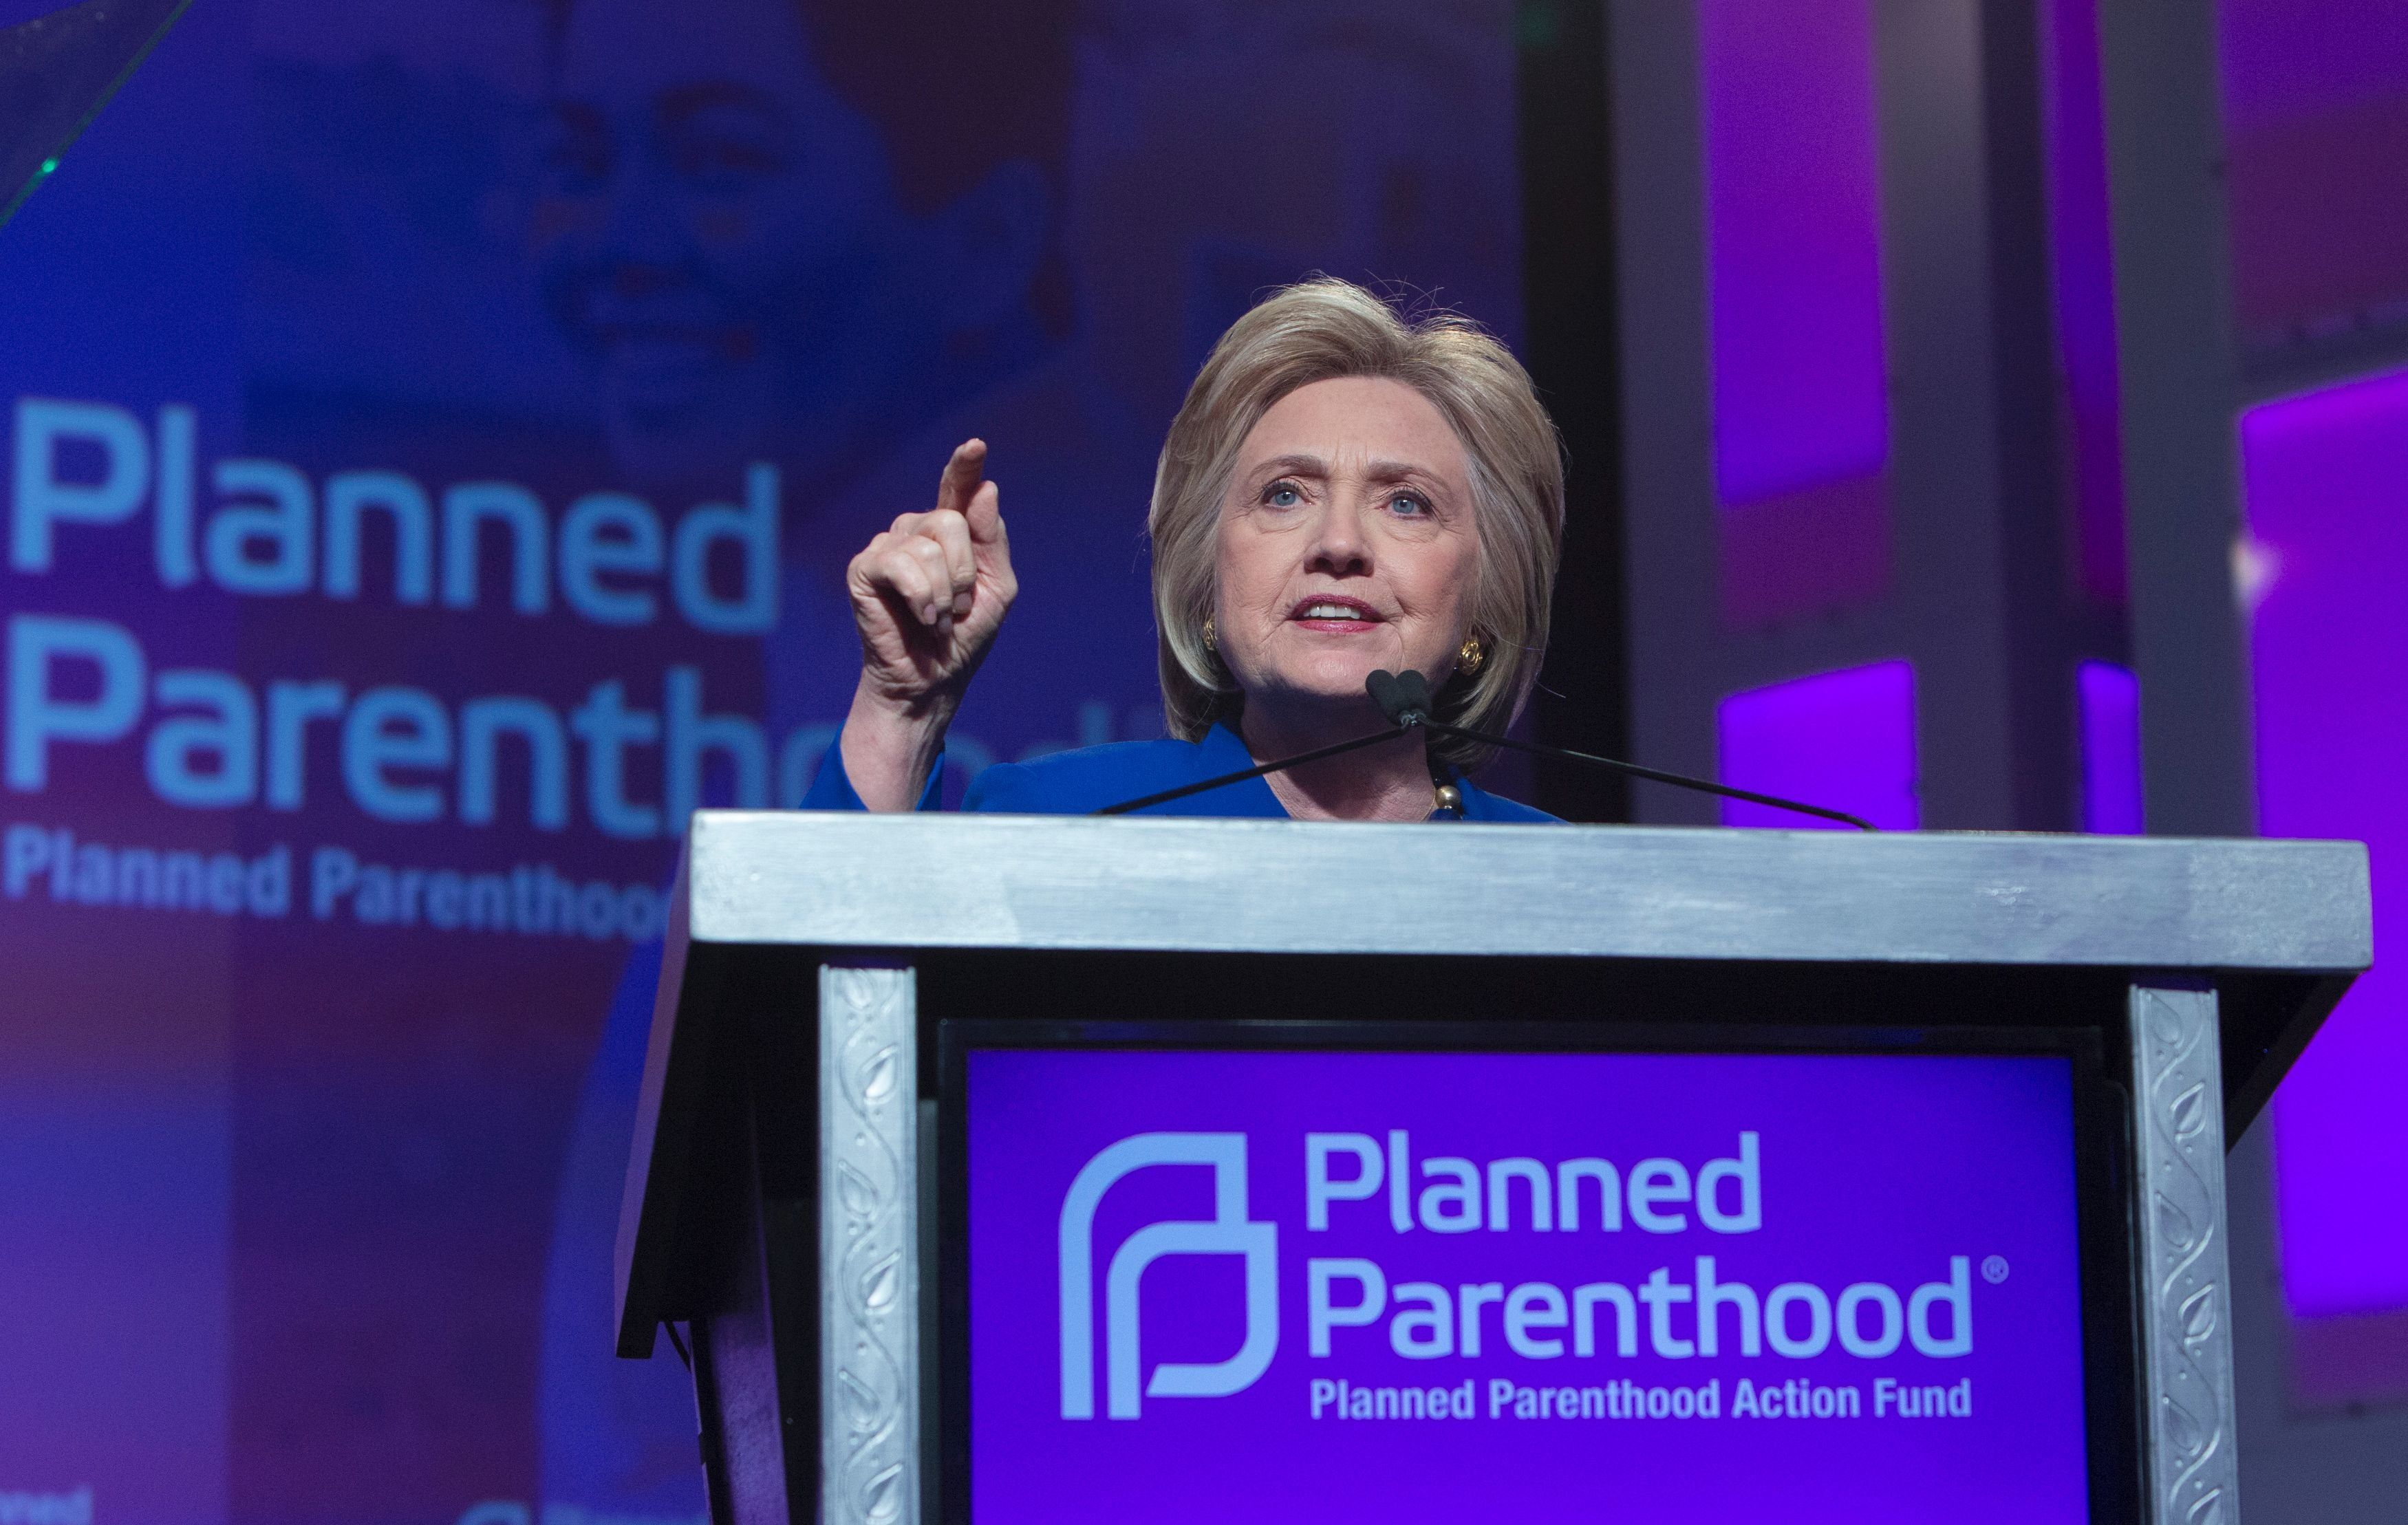 Democratic presidential candidate Hillary Clinton addresses the Planned Parenthood Action Fund in Washington DC, June 10, 2016.  / AFP / CHRIS KLEPONIS        (Photo credit should read CHRIS KLEPONIS/AFP/Getty Images)